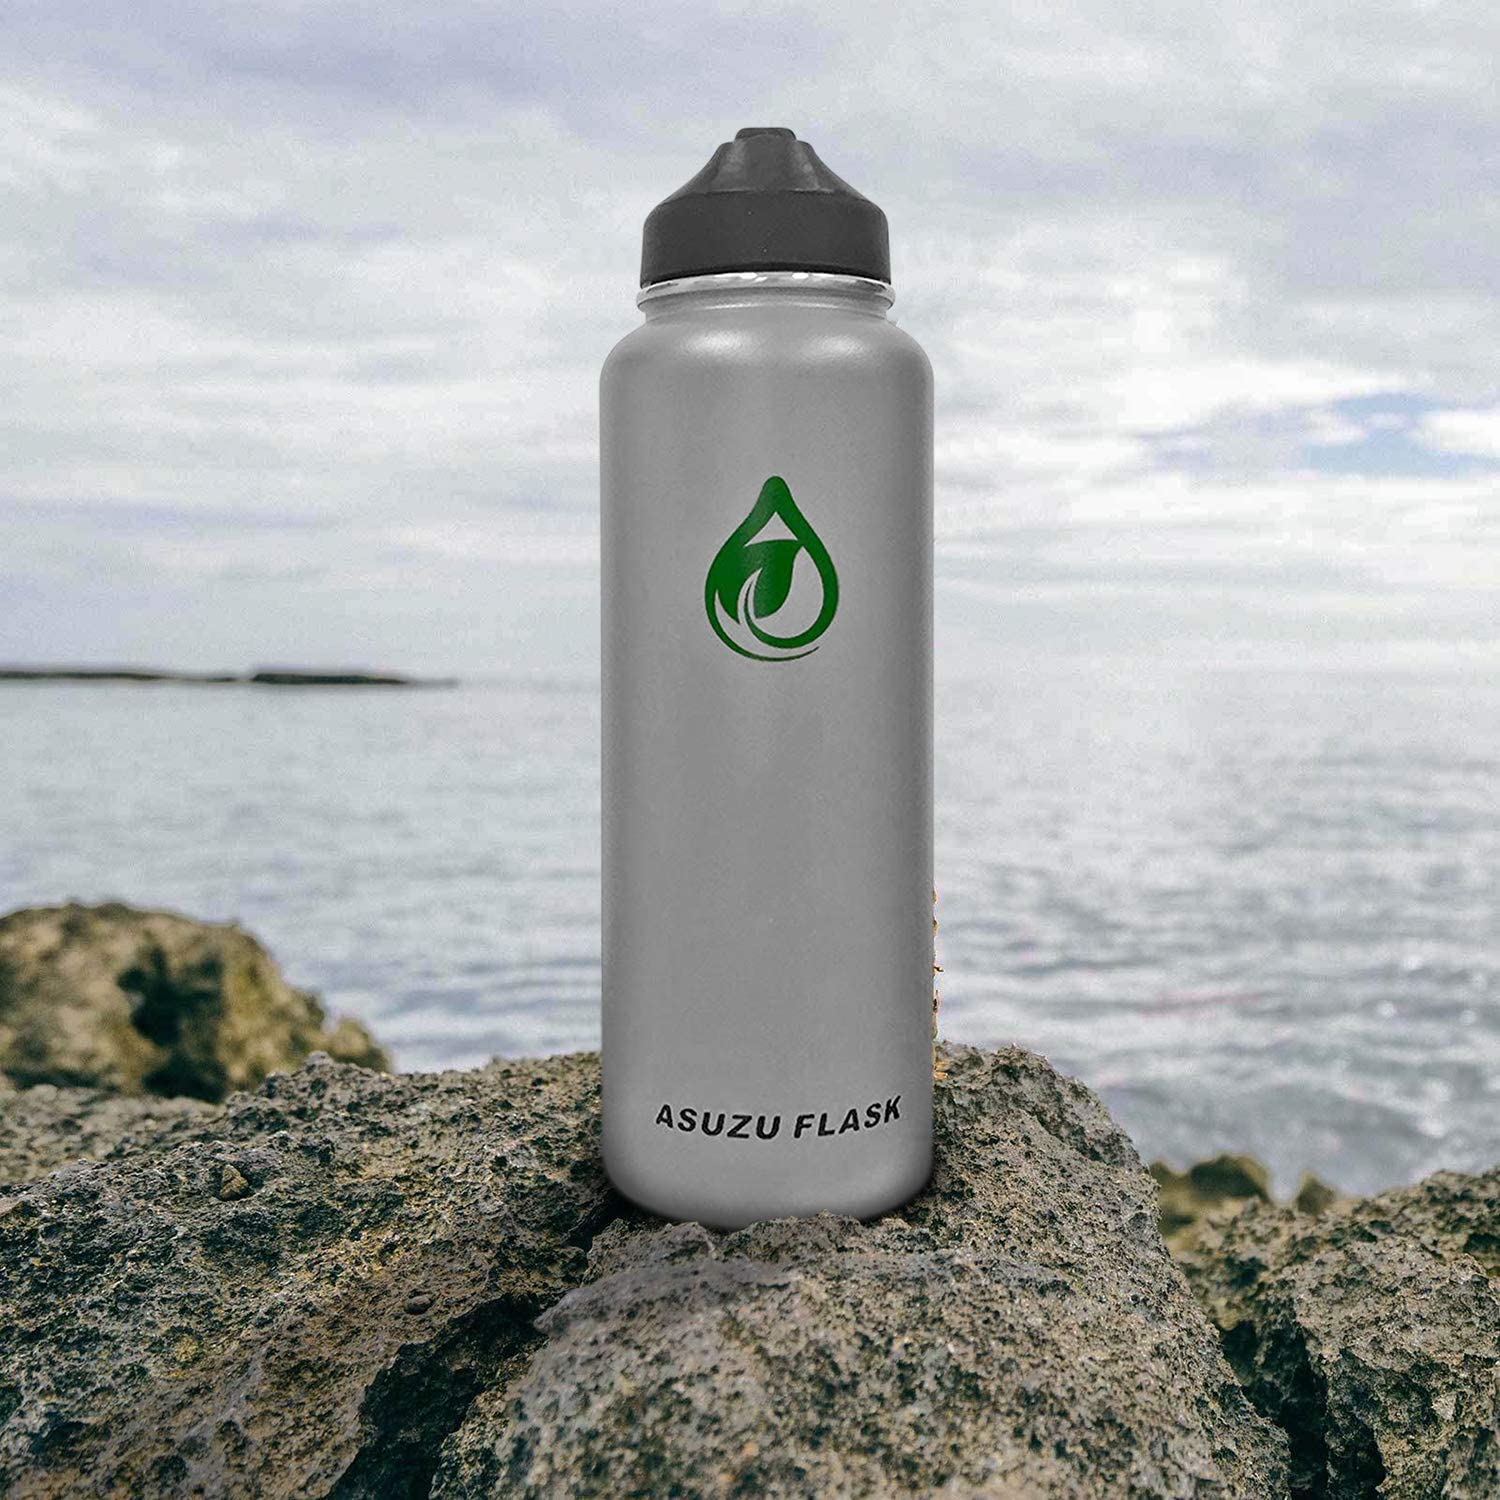 Office Double Insulated Water Bottle and Home Flask Double Wall Vacuum Insulated Water Bottle with Wide Mouth Straw Sports Asuzu Stainless Steel Water Bottle for Traveling Gym